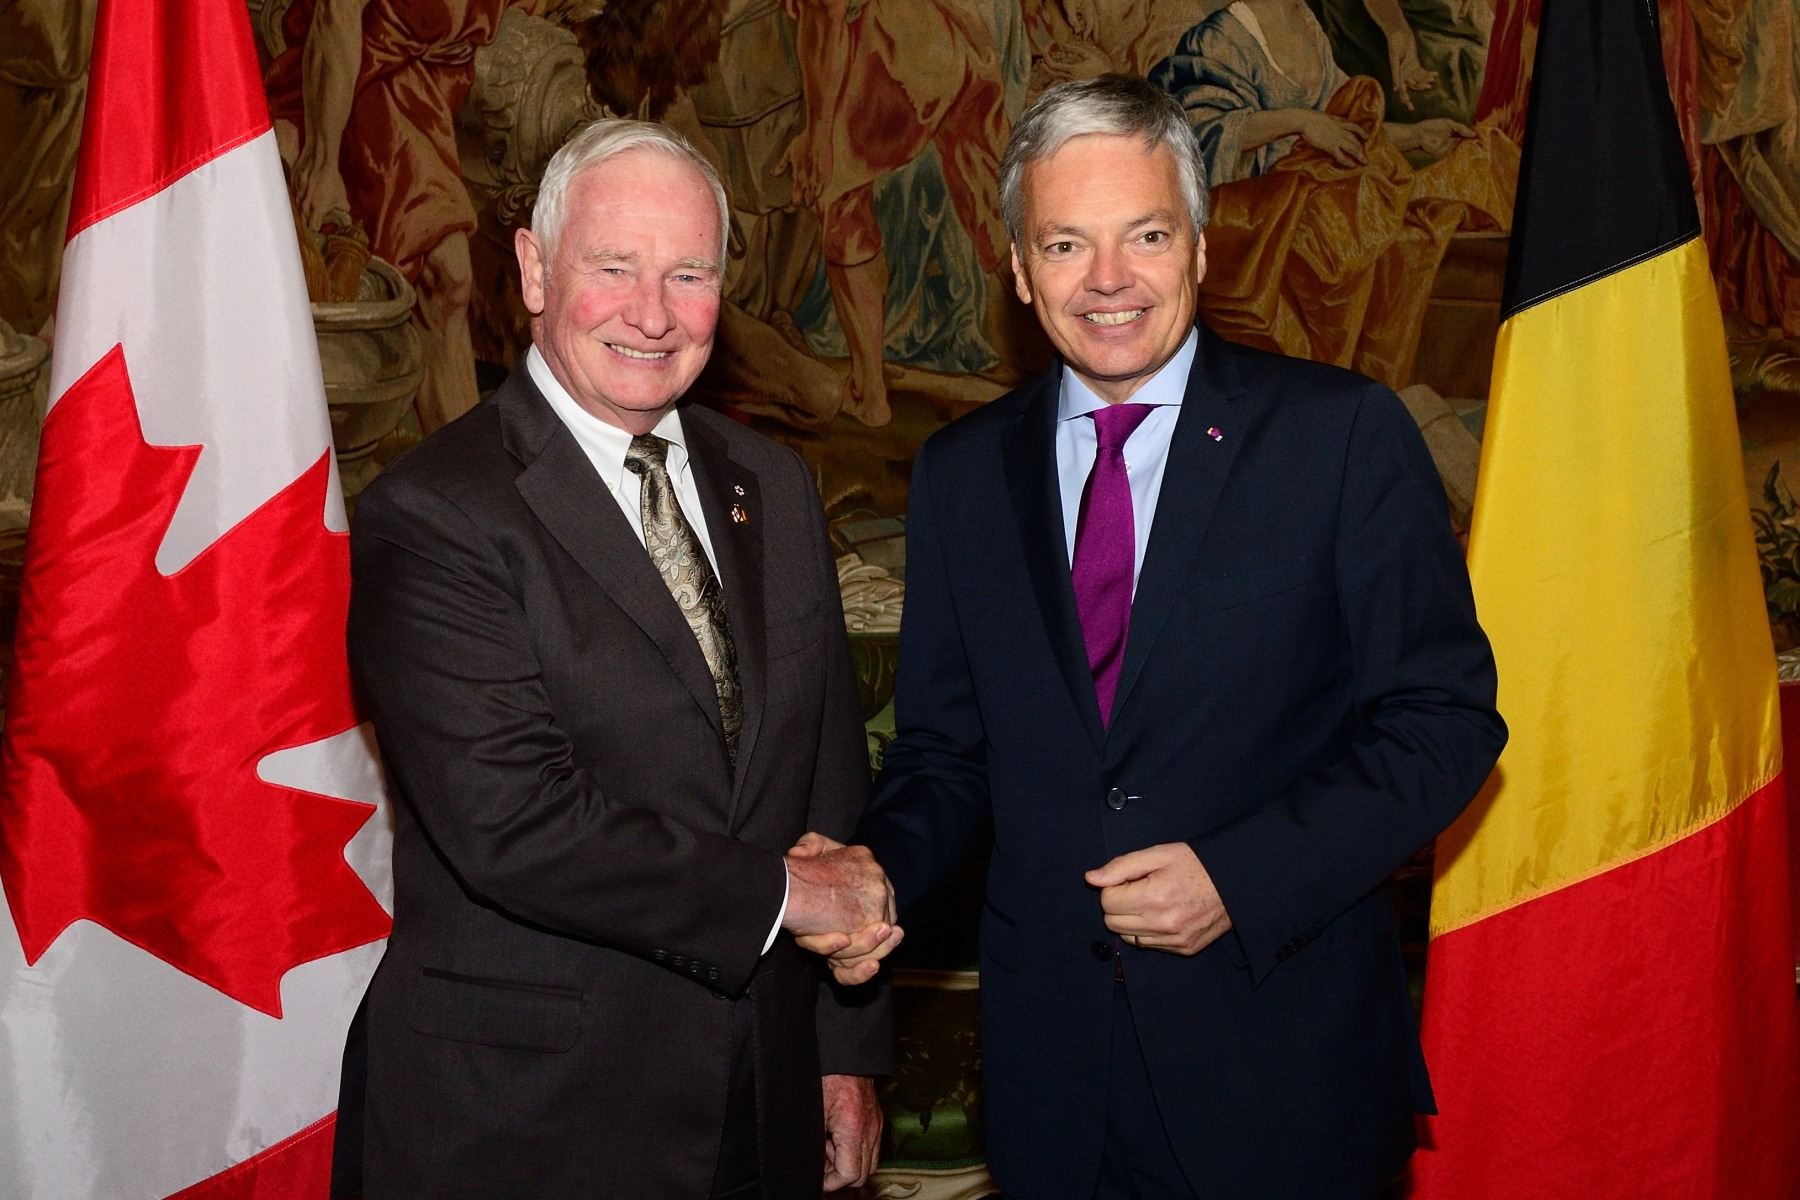 The Governor General attended a luncheon with representatives of the Canadian and Belgian Business Communities. During the luncheon, he met with Didier Reynders, Minister of Foreign Affairs.